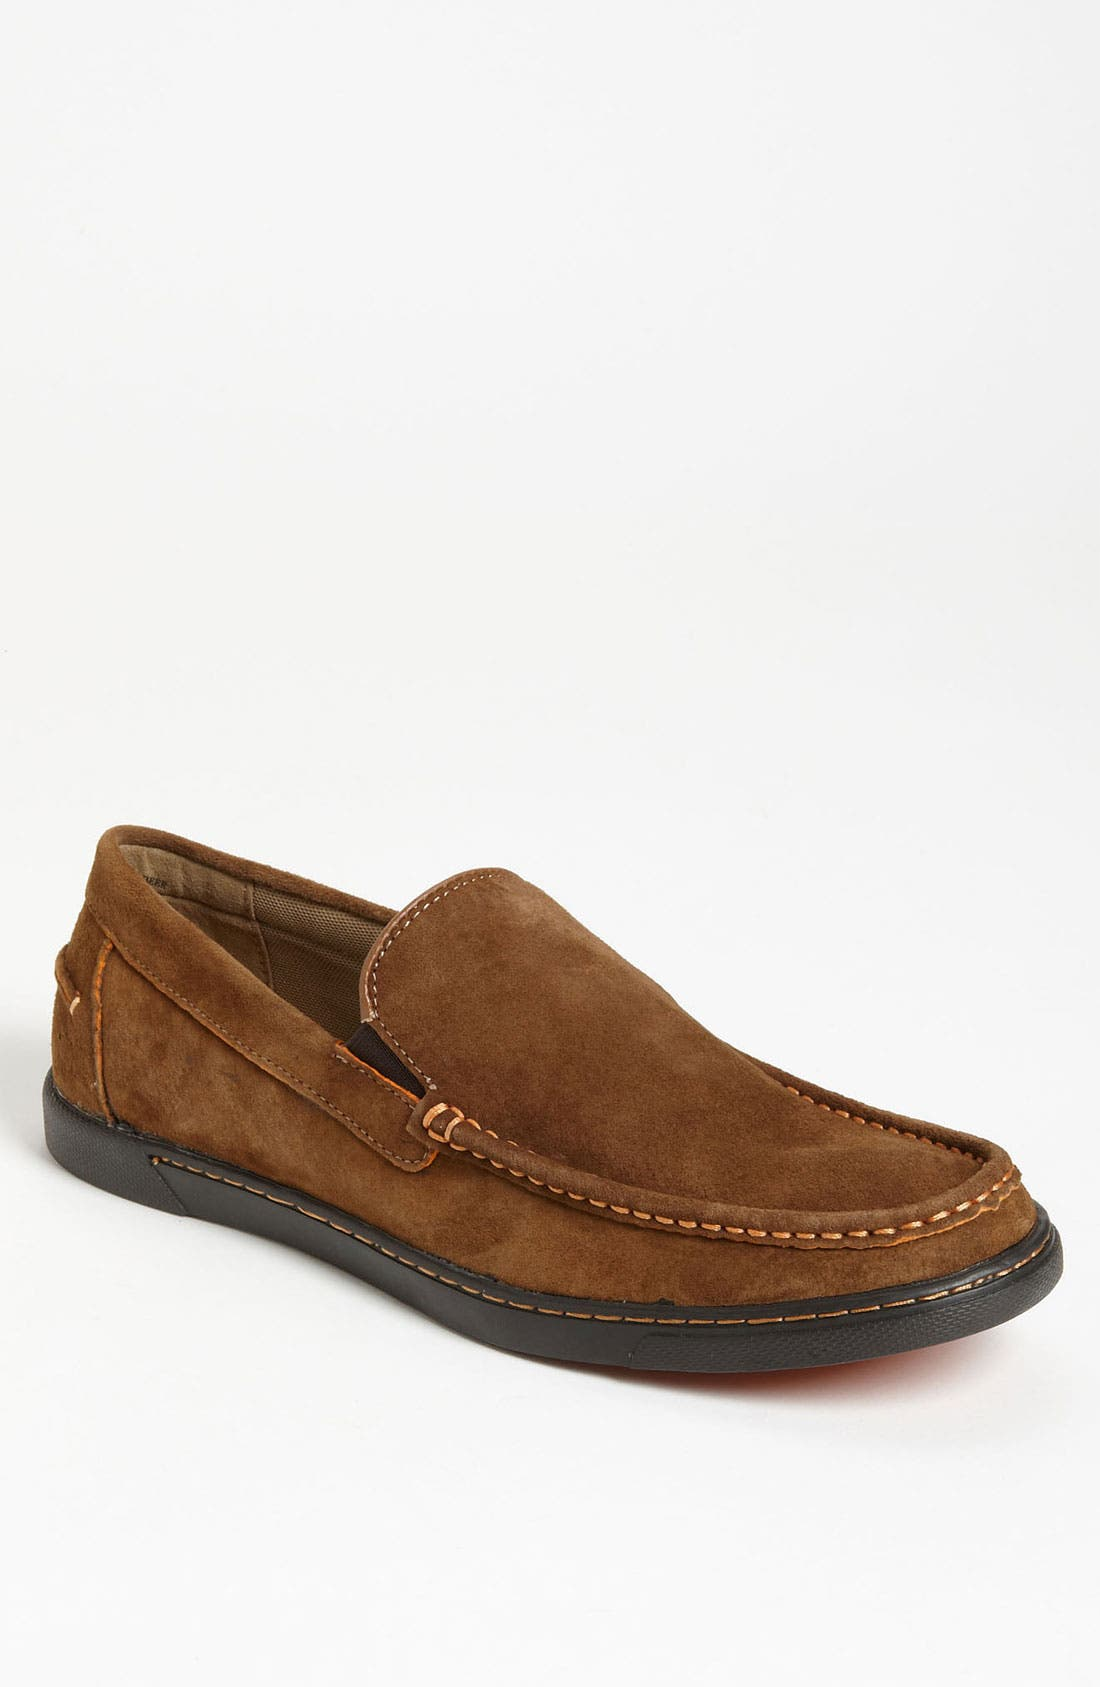 Alternate Image 1 Selected - Hush Puppies 'Winns' Loafer